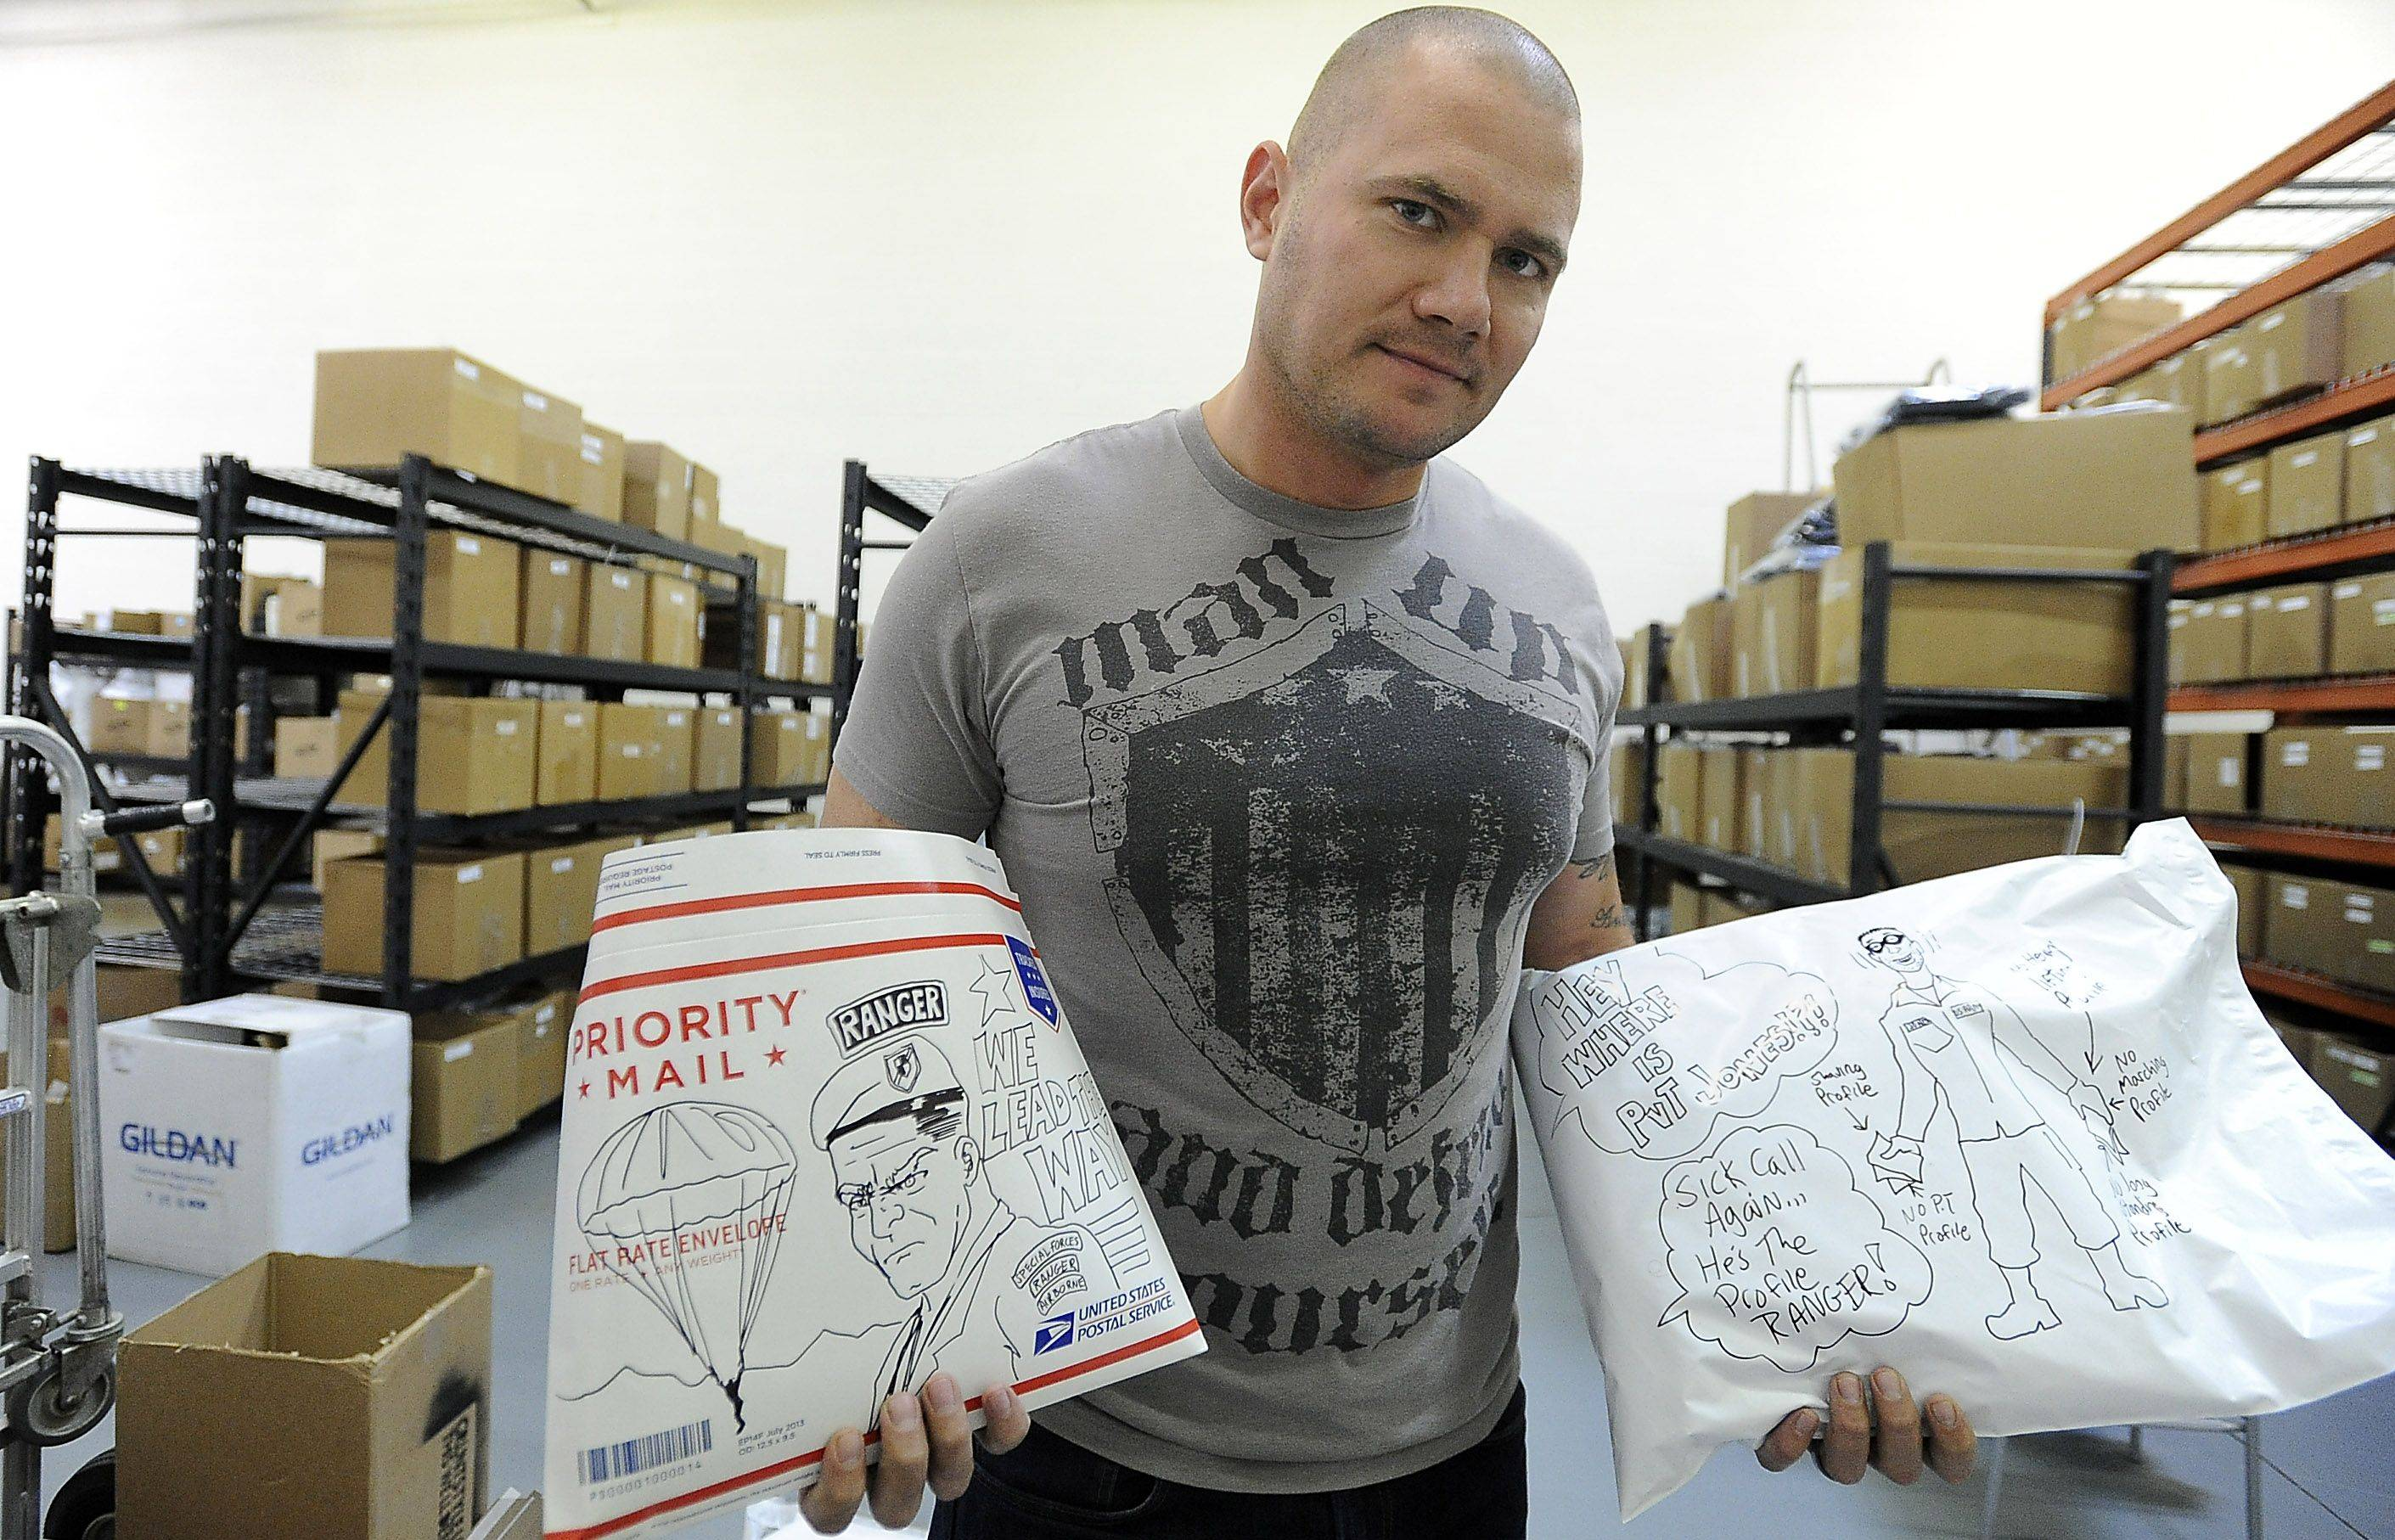 Daniel Alarik, founder and owner of the Grunt Style clothing line in Schaumburg, holds up orders of military-themed products and apparel that are ready to be shipped.